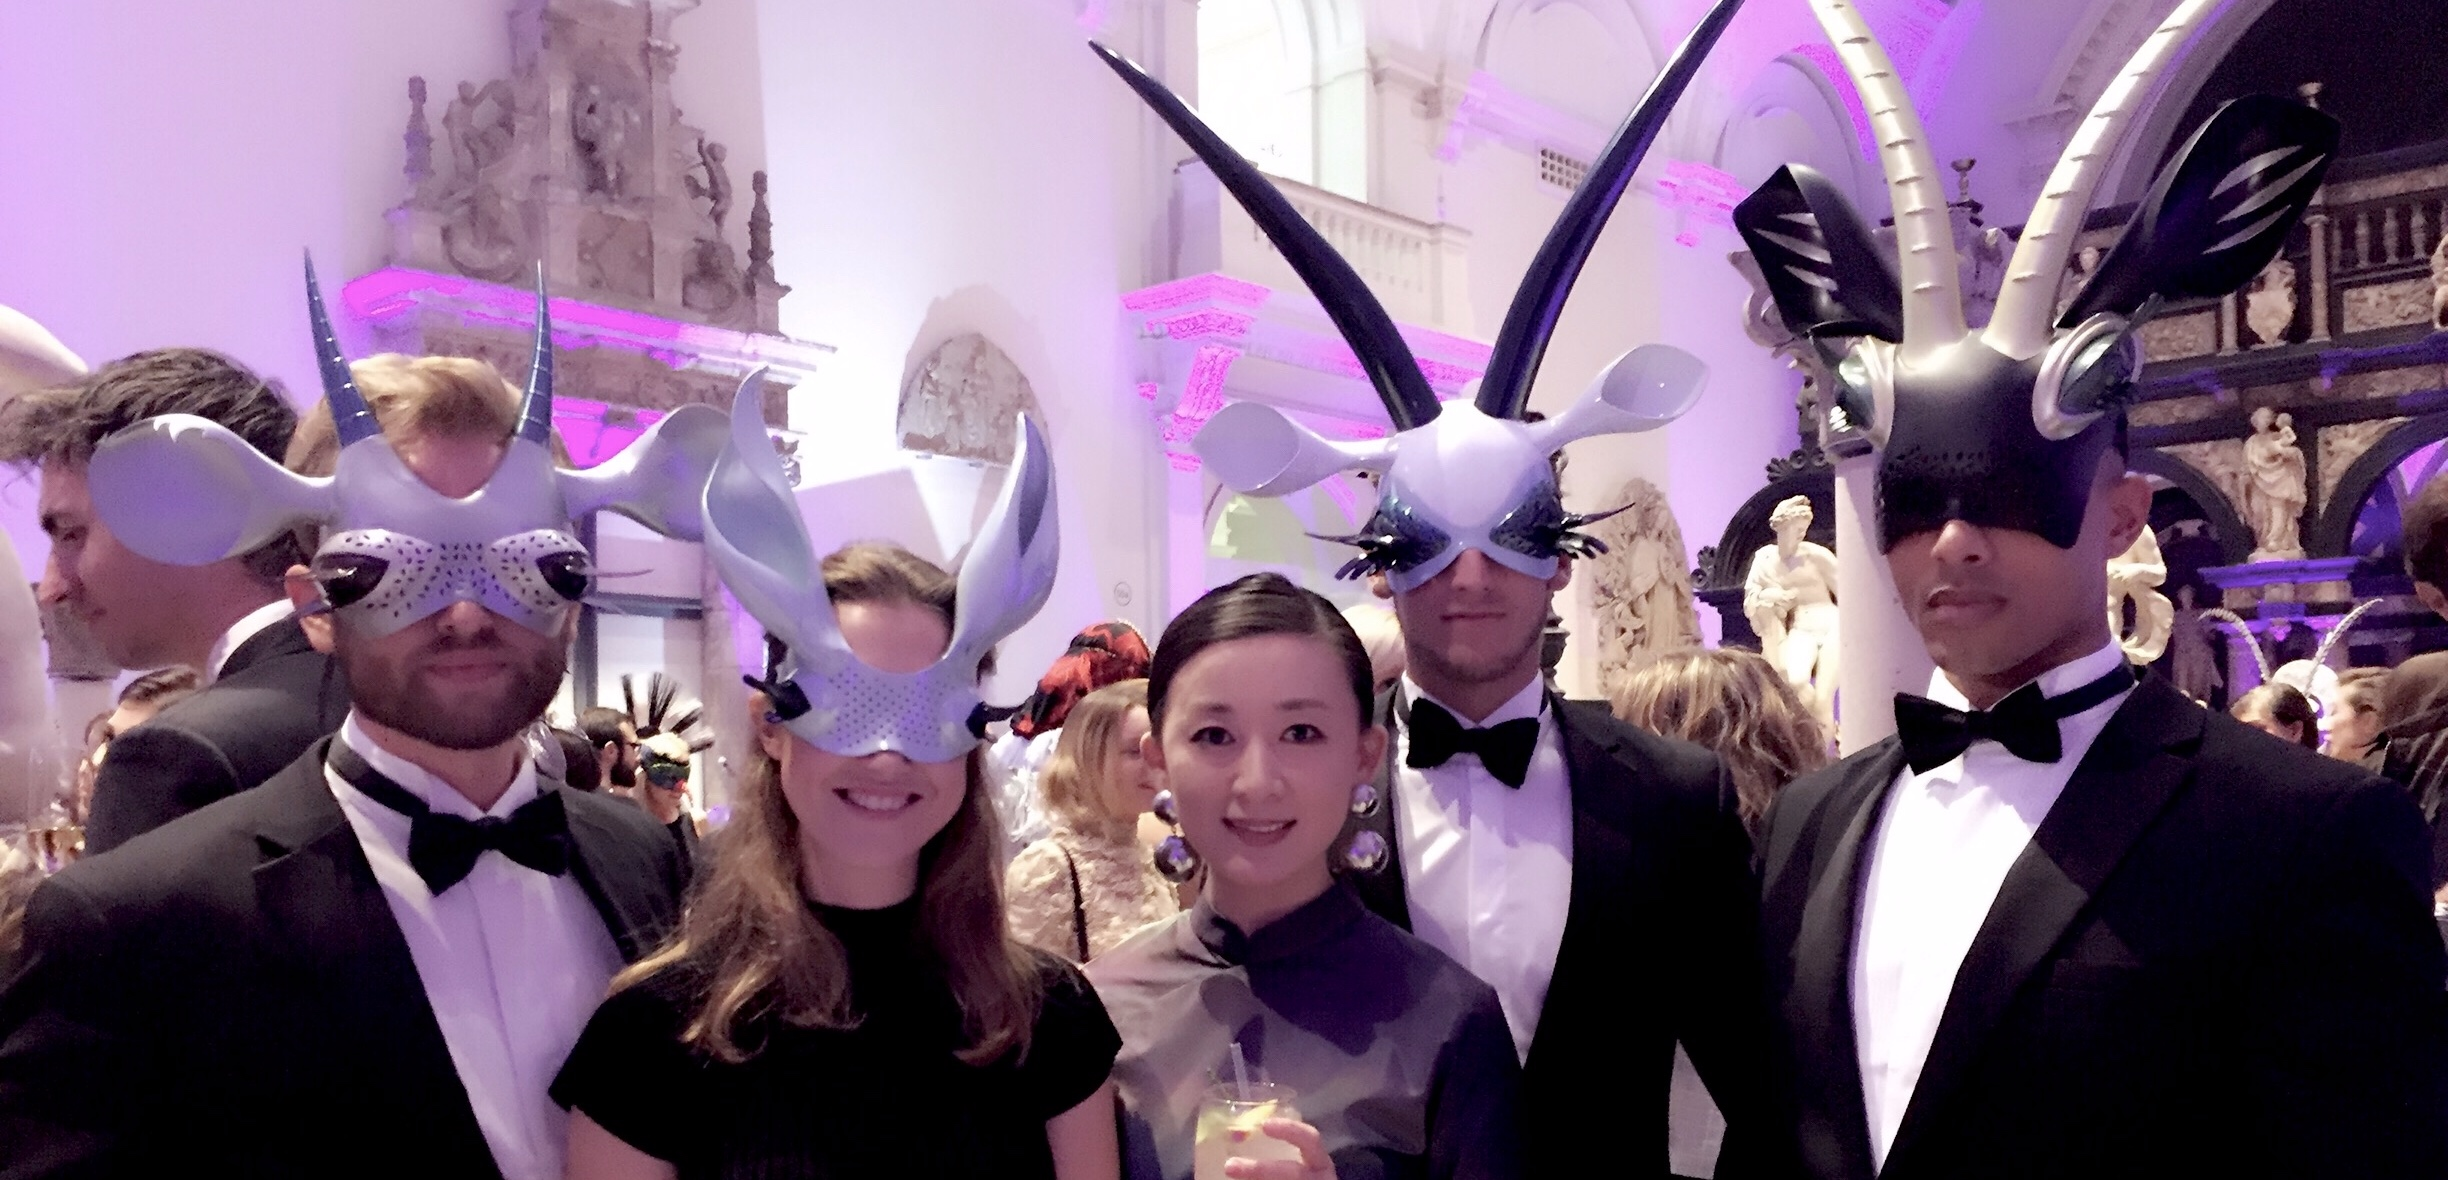 Rui XU with her antelope masks worn by guests at the opening of the Animal Ball by The Elephant Family, V&A, 2016